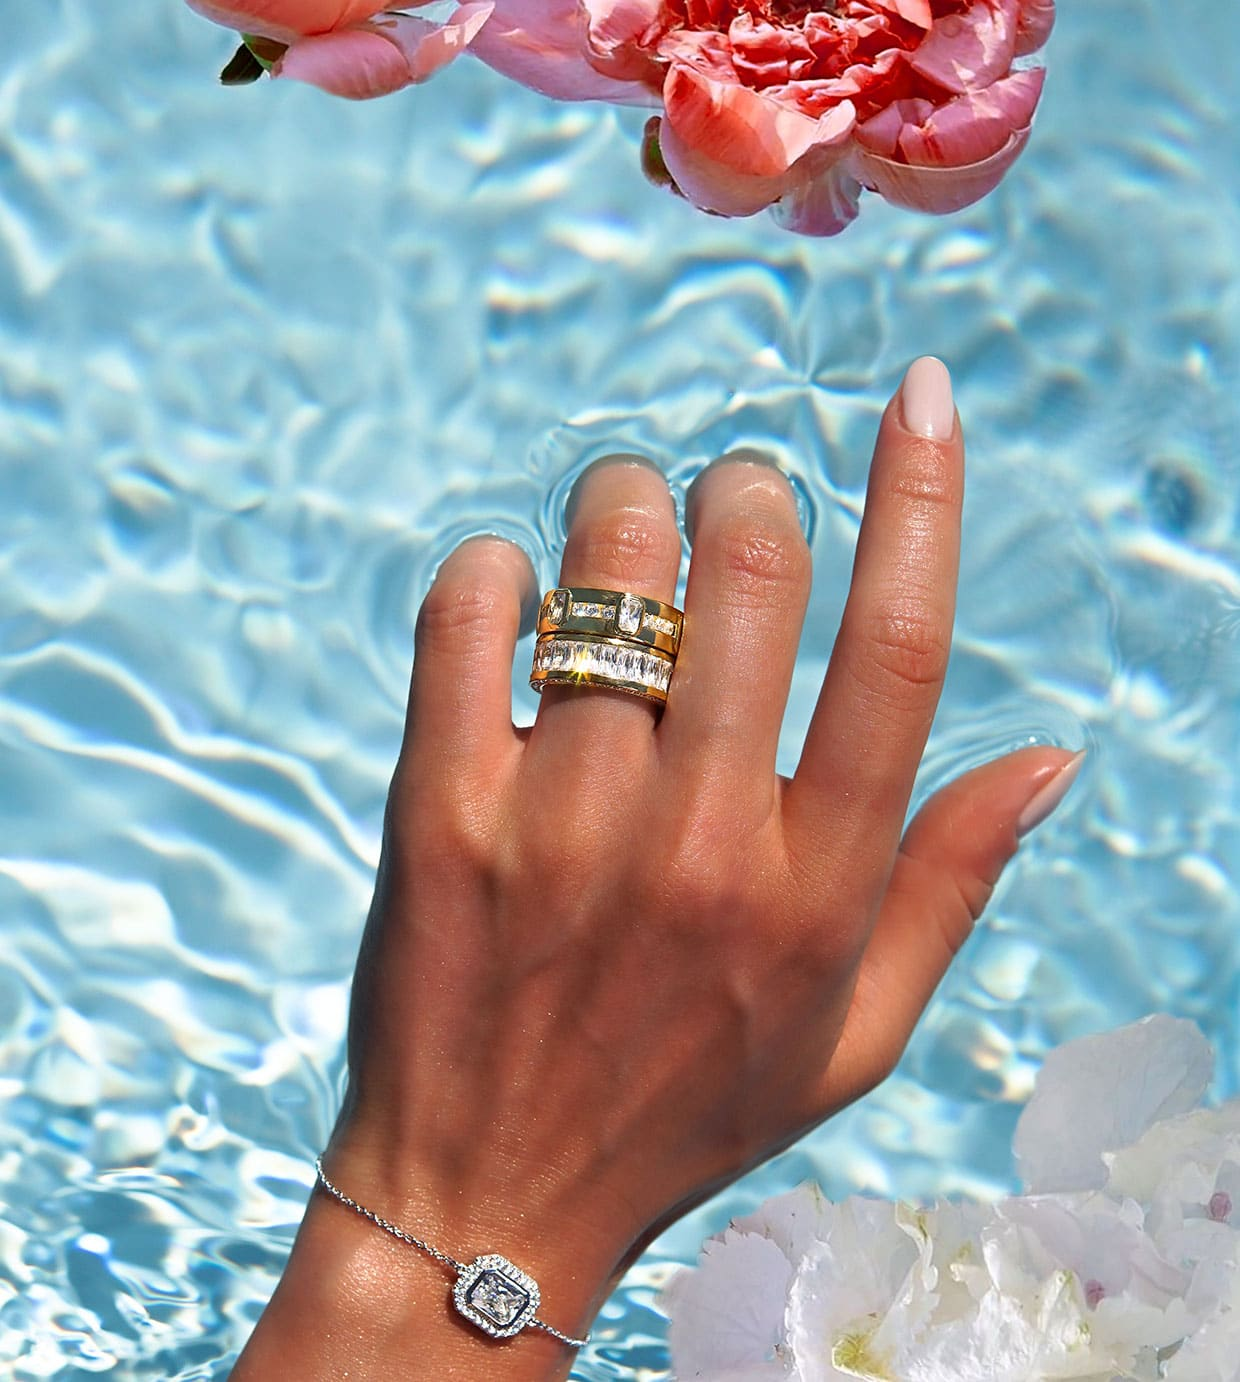 Rings on hand by the pool